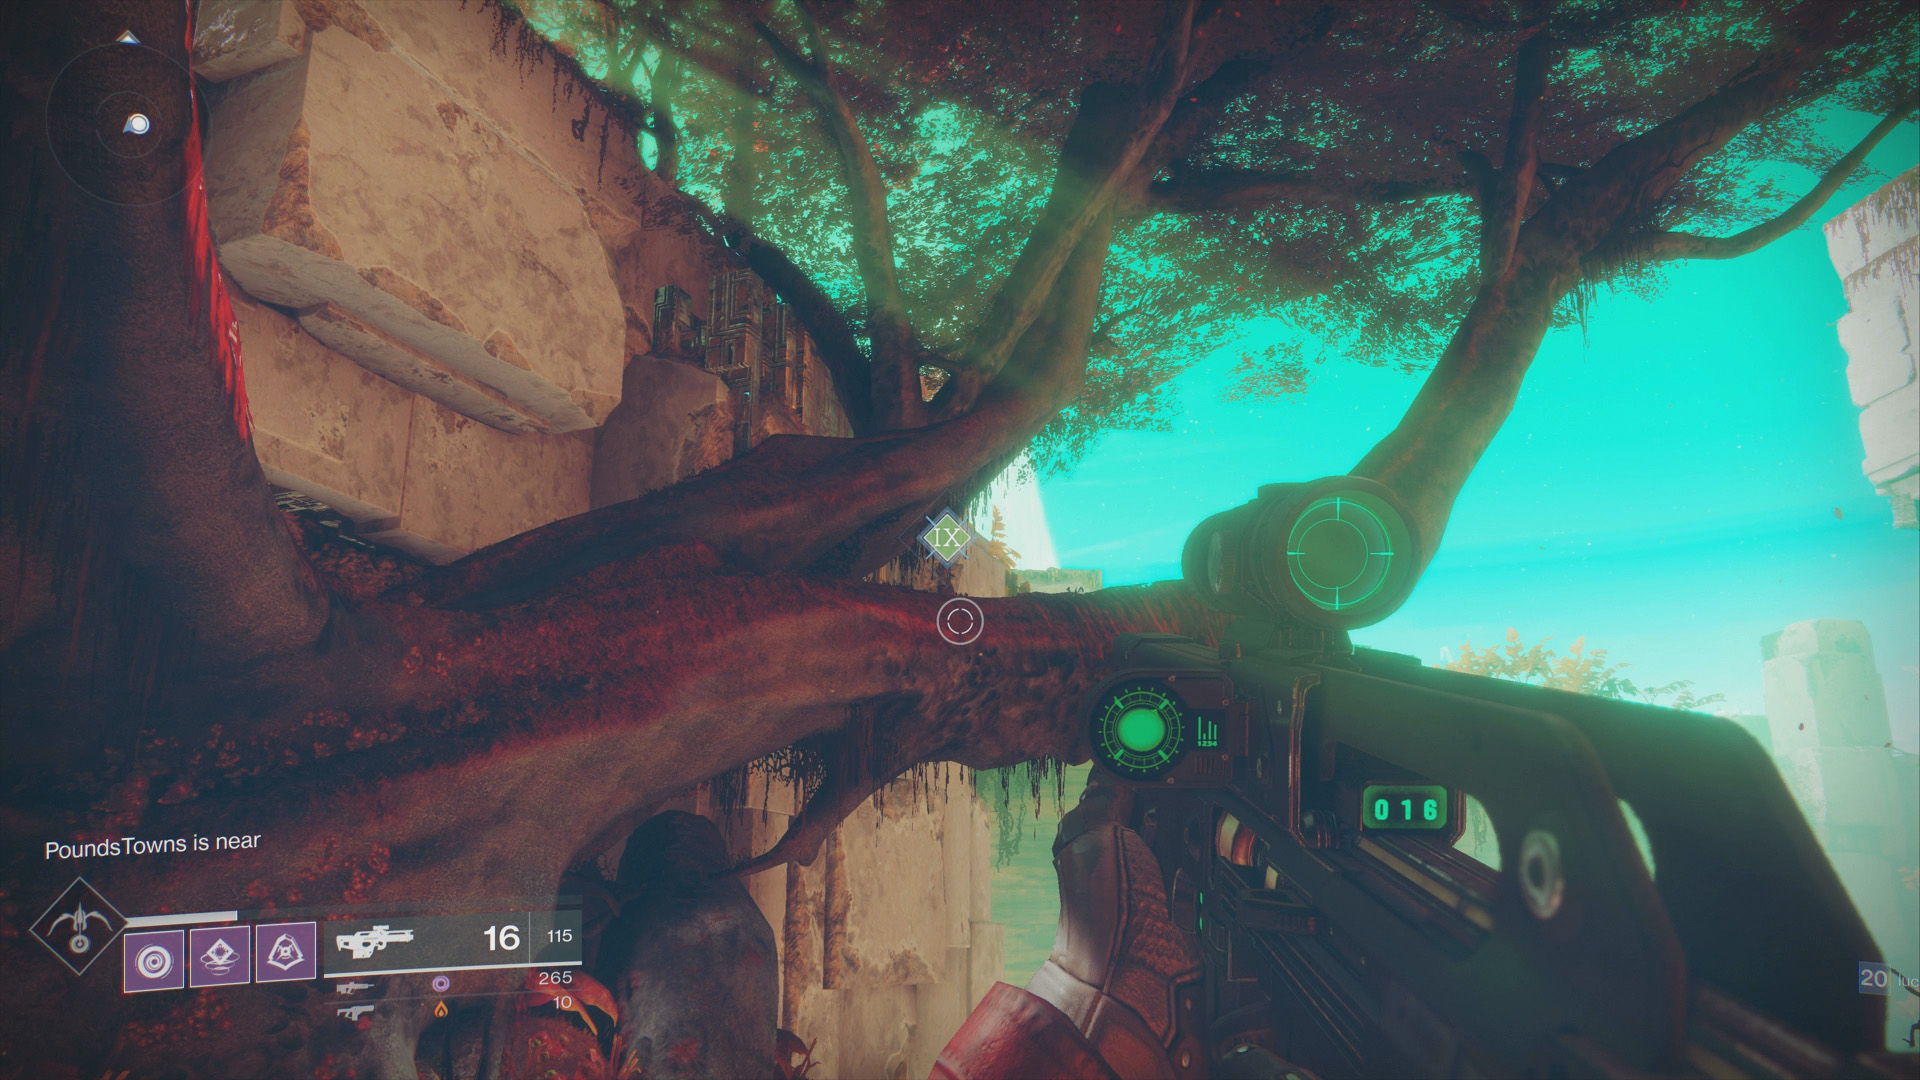 Where Is Xur In Destiny 2? Xur Is In A Tree